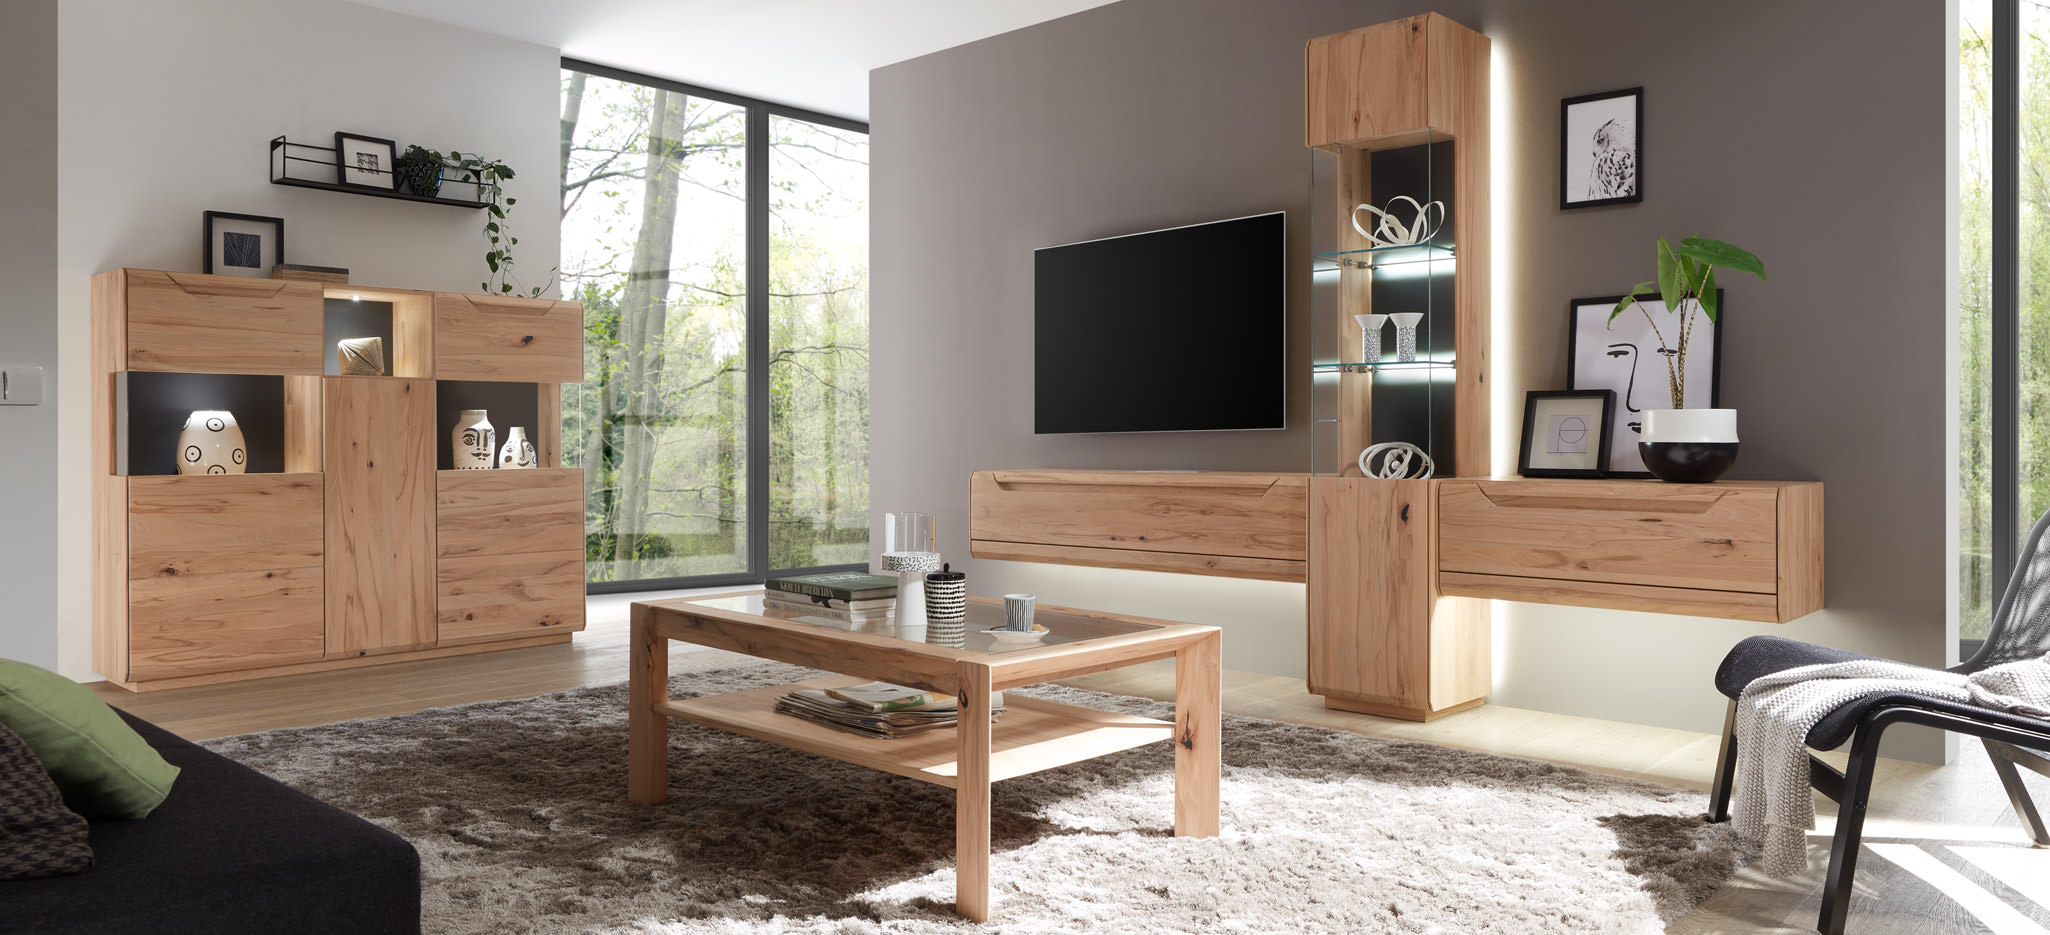 Wohnzimmer Möbel Massivholz Solid Wood Furniture Premium Collection Cavani From Decker